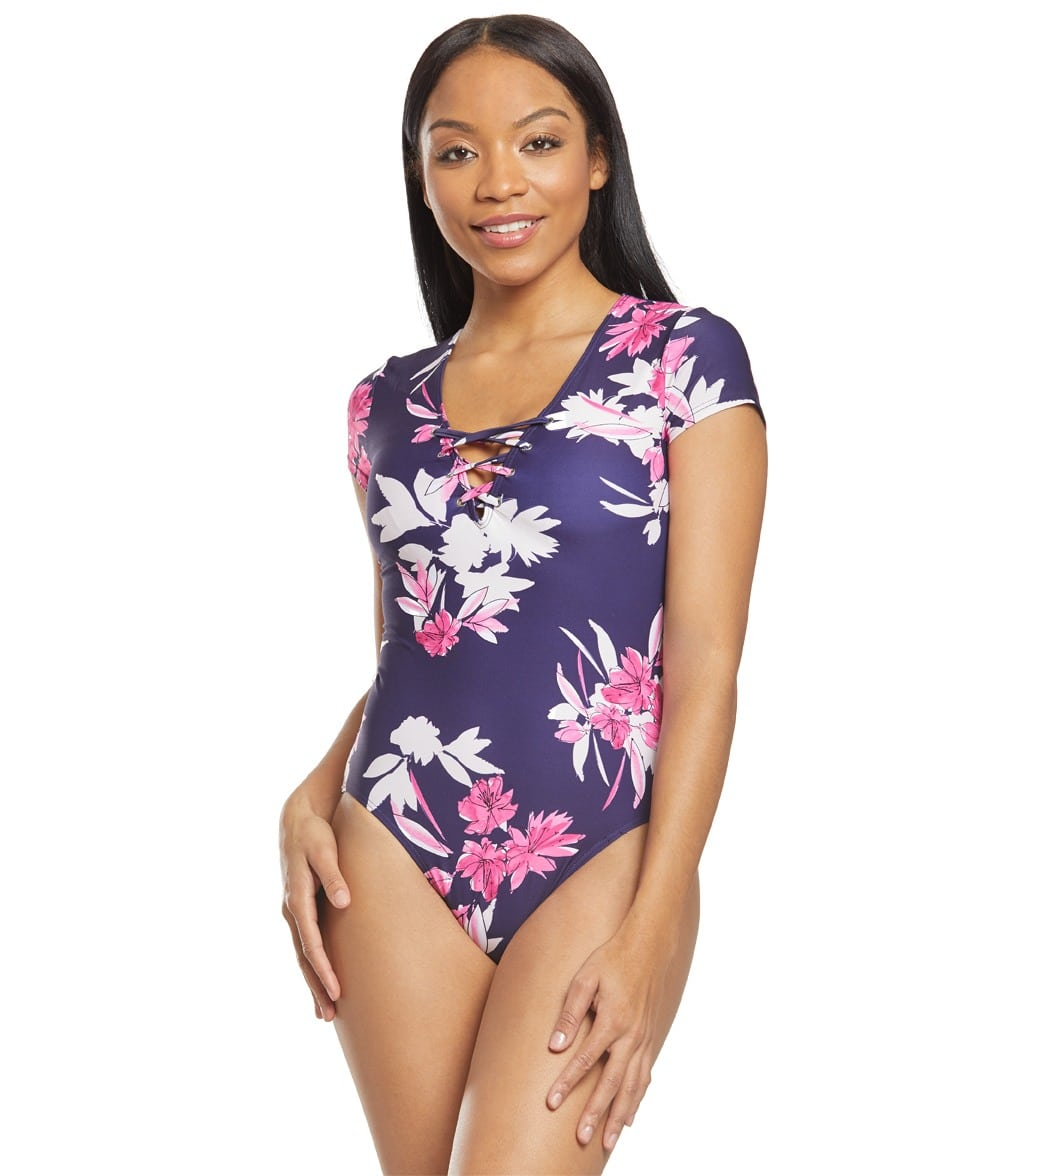 8d7f33d9a Nautica Ahoy Shortsleeve One Piece Swimsuit at SwimOutlet.com - Free  Shipping